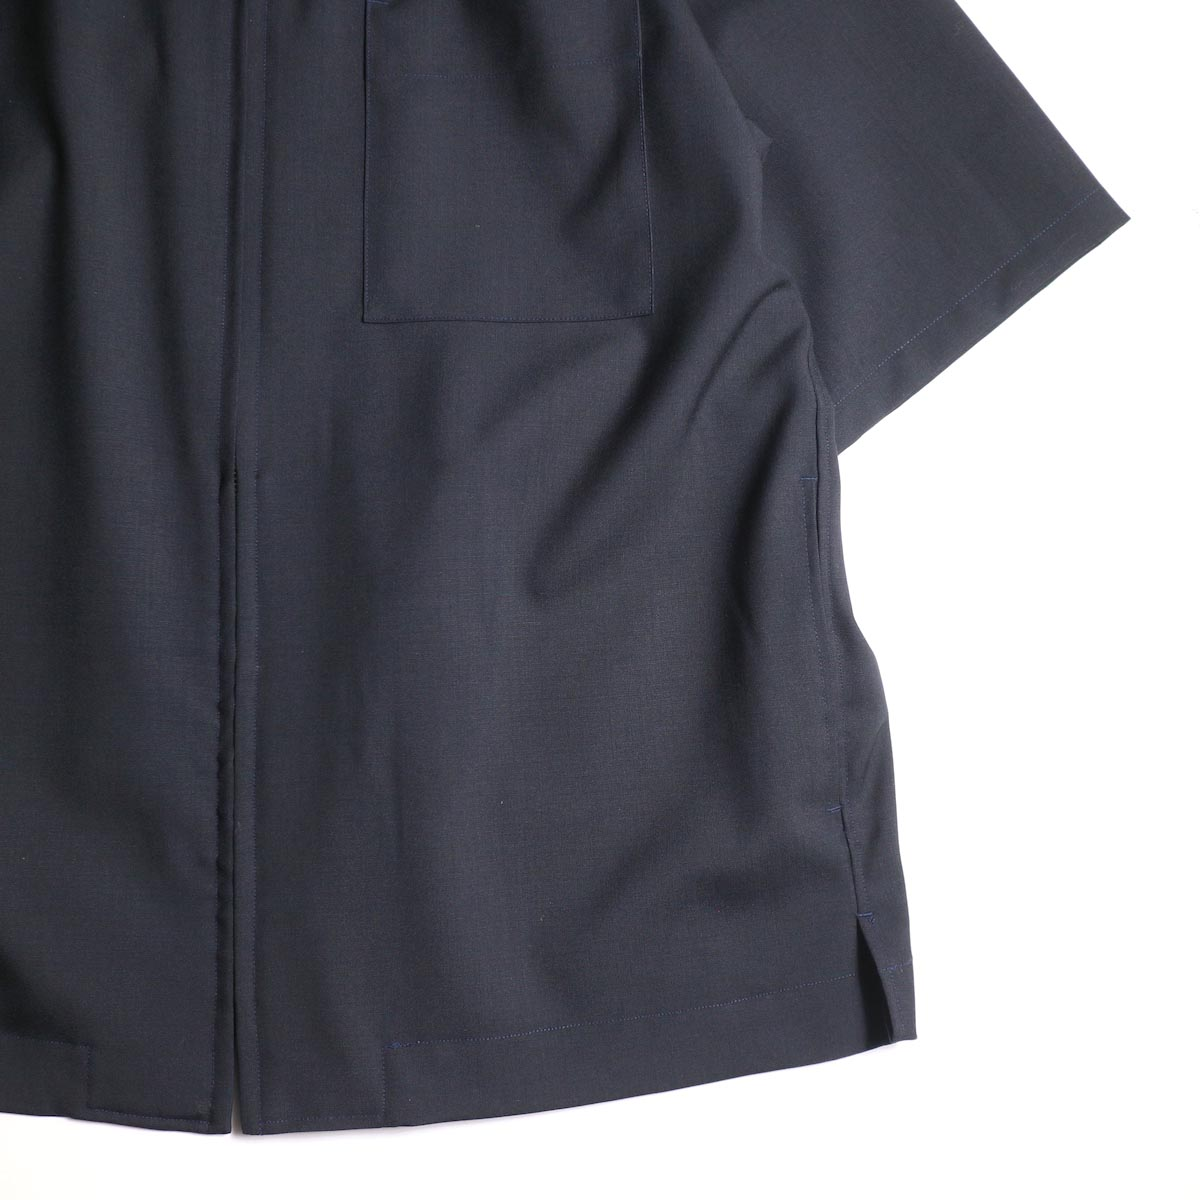 UNIVERSAL PRODUCTS /  SUMMER WOOL ZIP FRONT S/S SHIRT (Navy)裾、ポケット